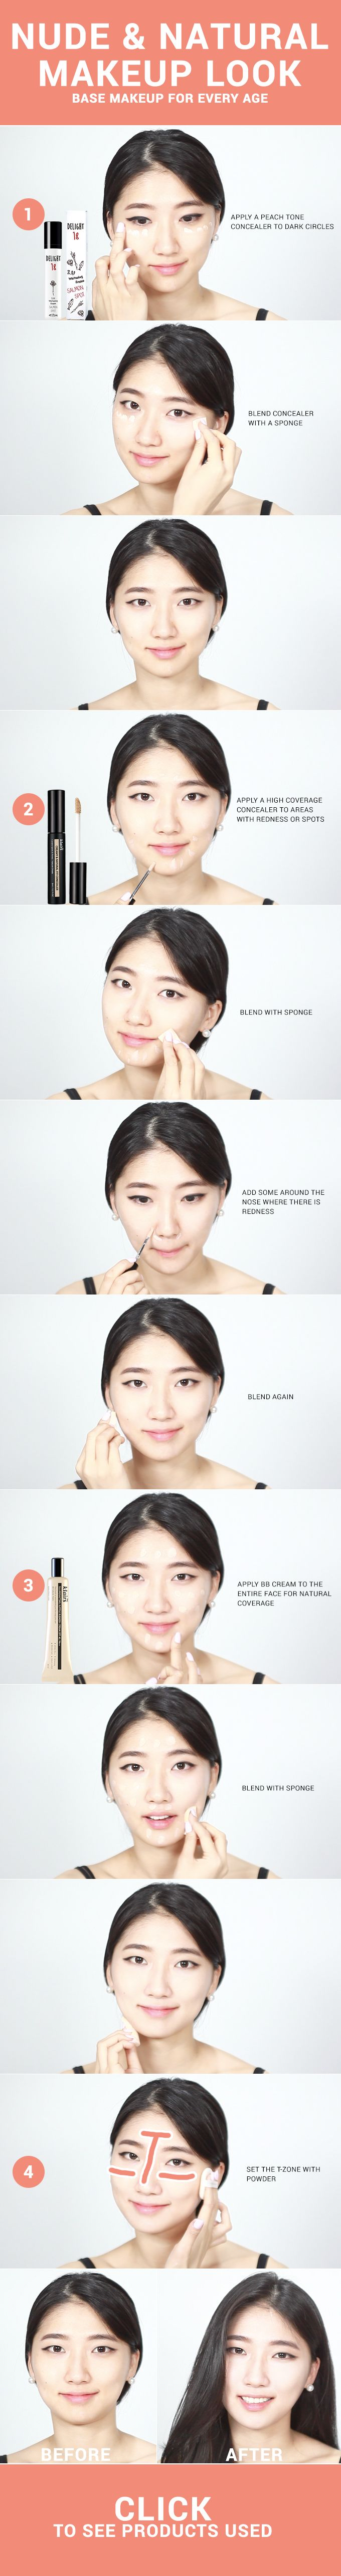 Makeup doesn't have to be as complex & age restricted as you think. Getting a natural makeup look with this technique can bring life to your daily look! - http://www.wishtrend.com/glam/natural-makeup-look-for-every-age/